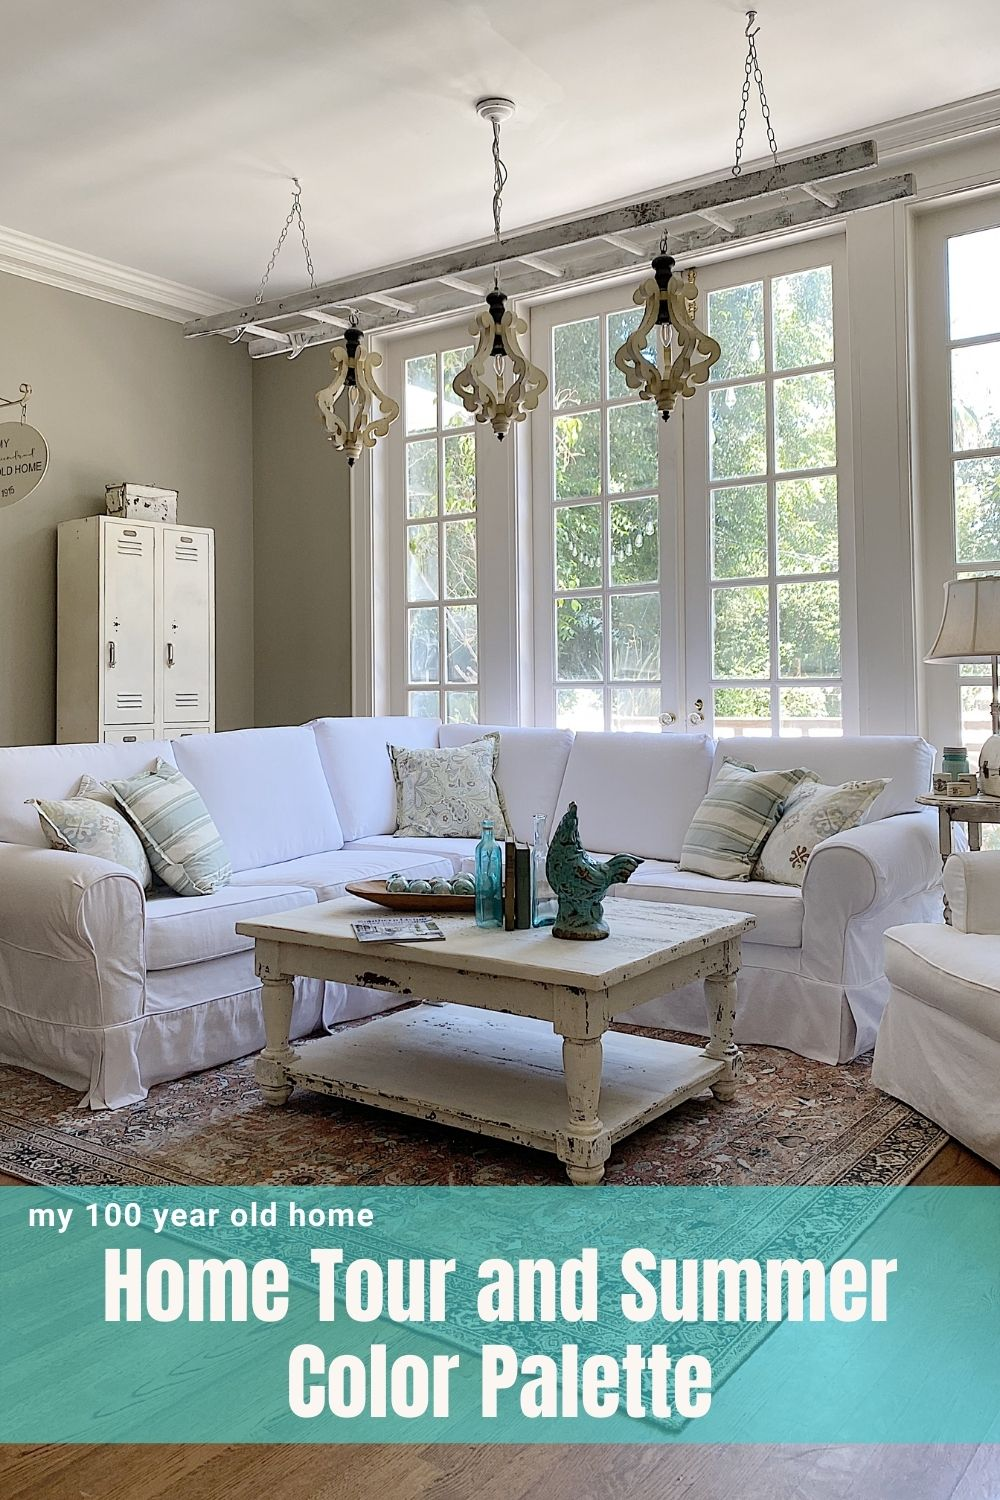 I finally decided on our summer color palette and chose aqua! I am sharing our family room today and I hope you will like it as much as I do.